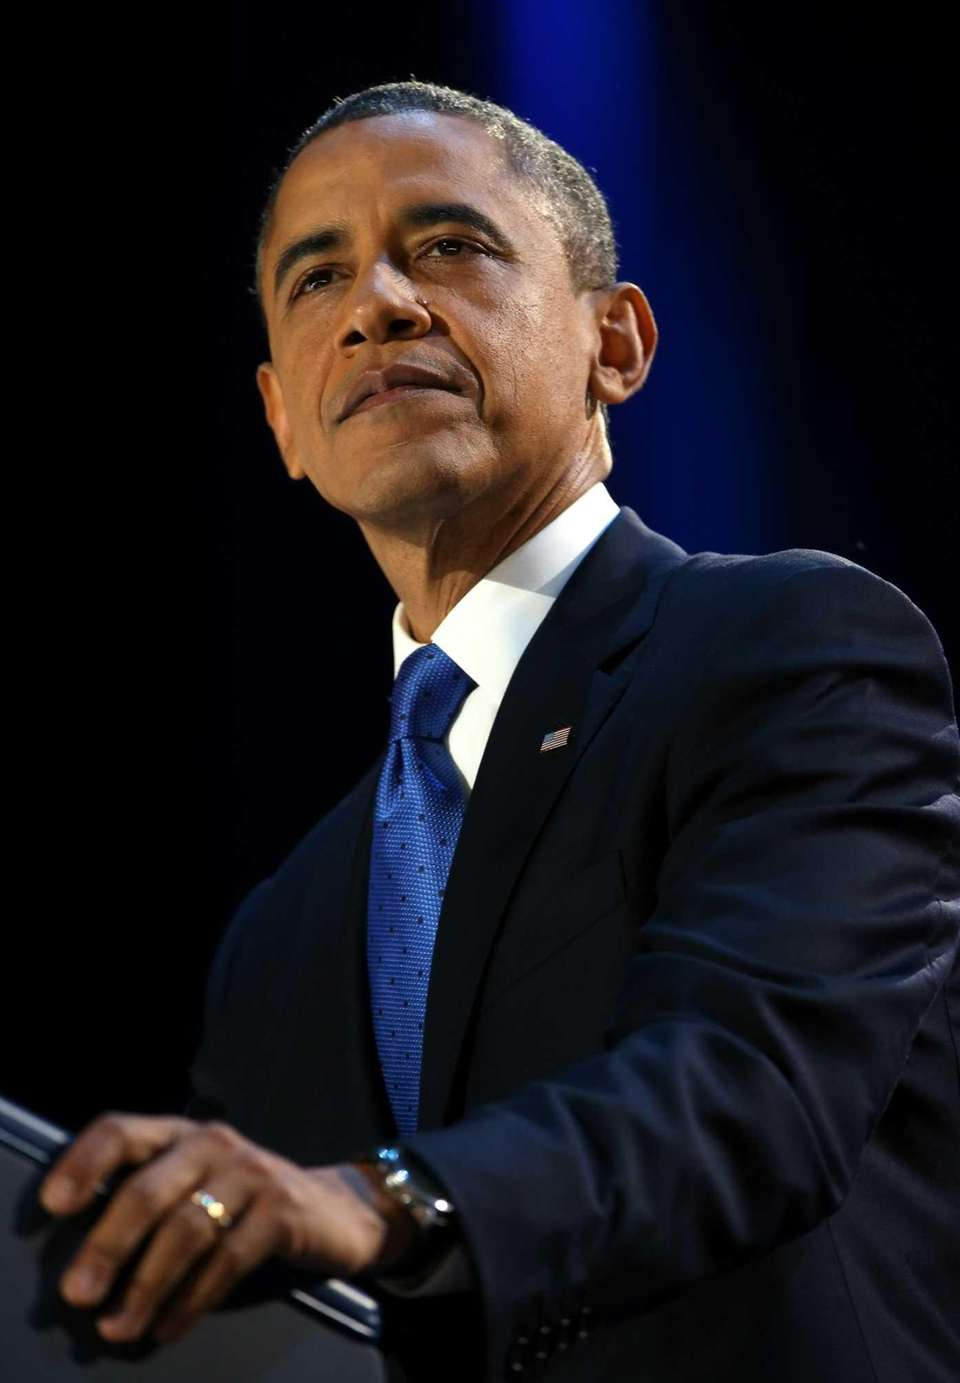 U.S. President Barack Obama delivers his victory speech